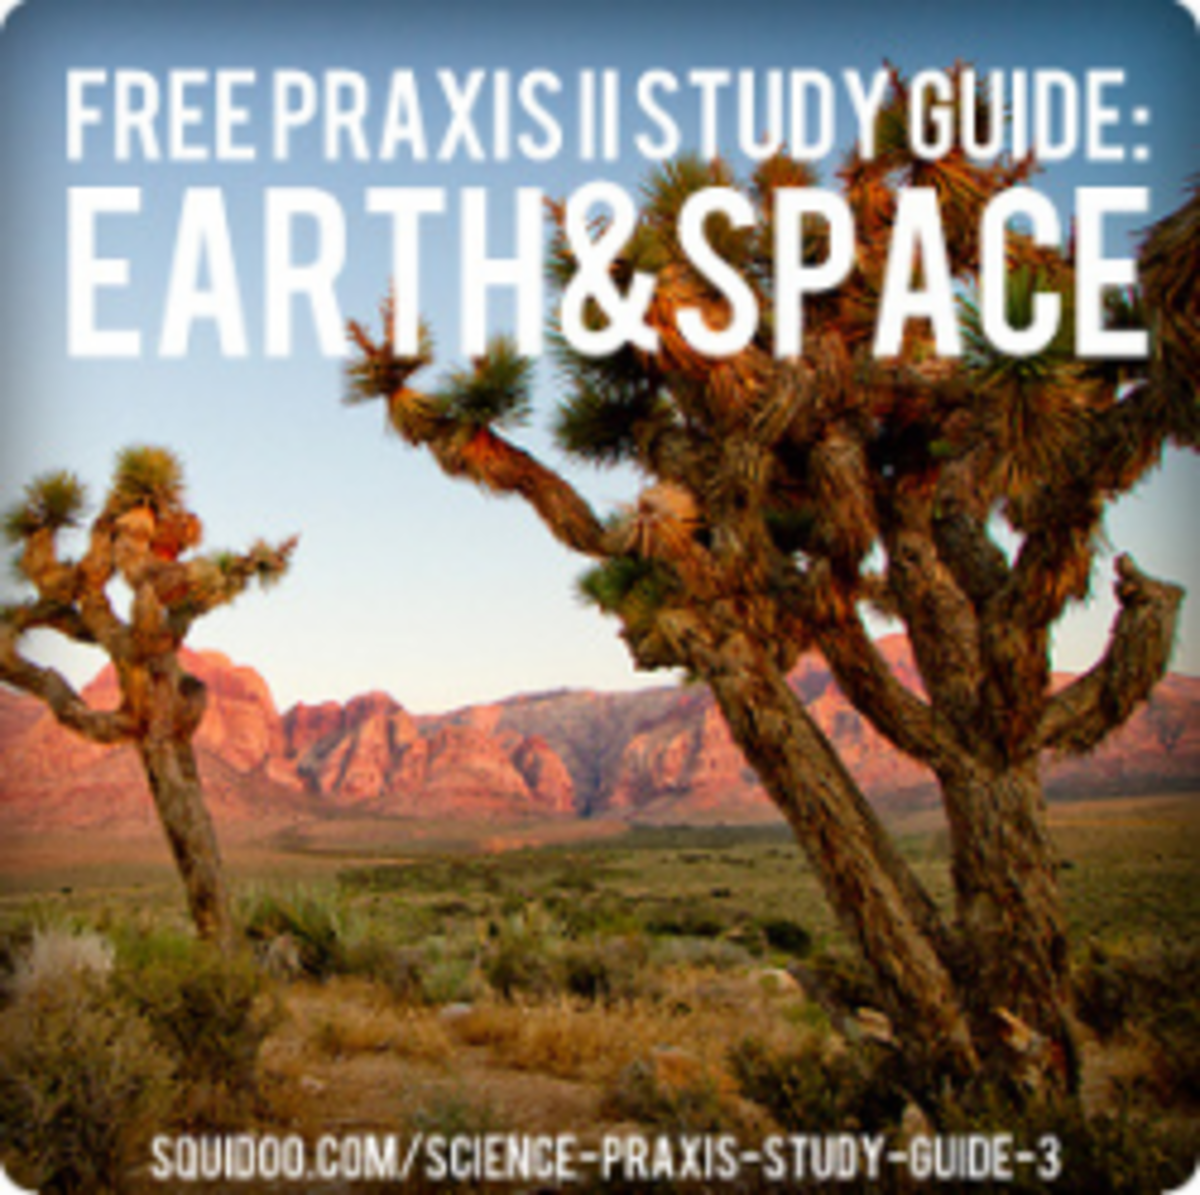 Free PRAXIS II Earth and Space Sciences Study Guide